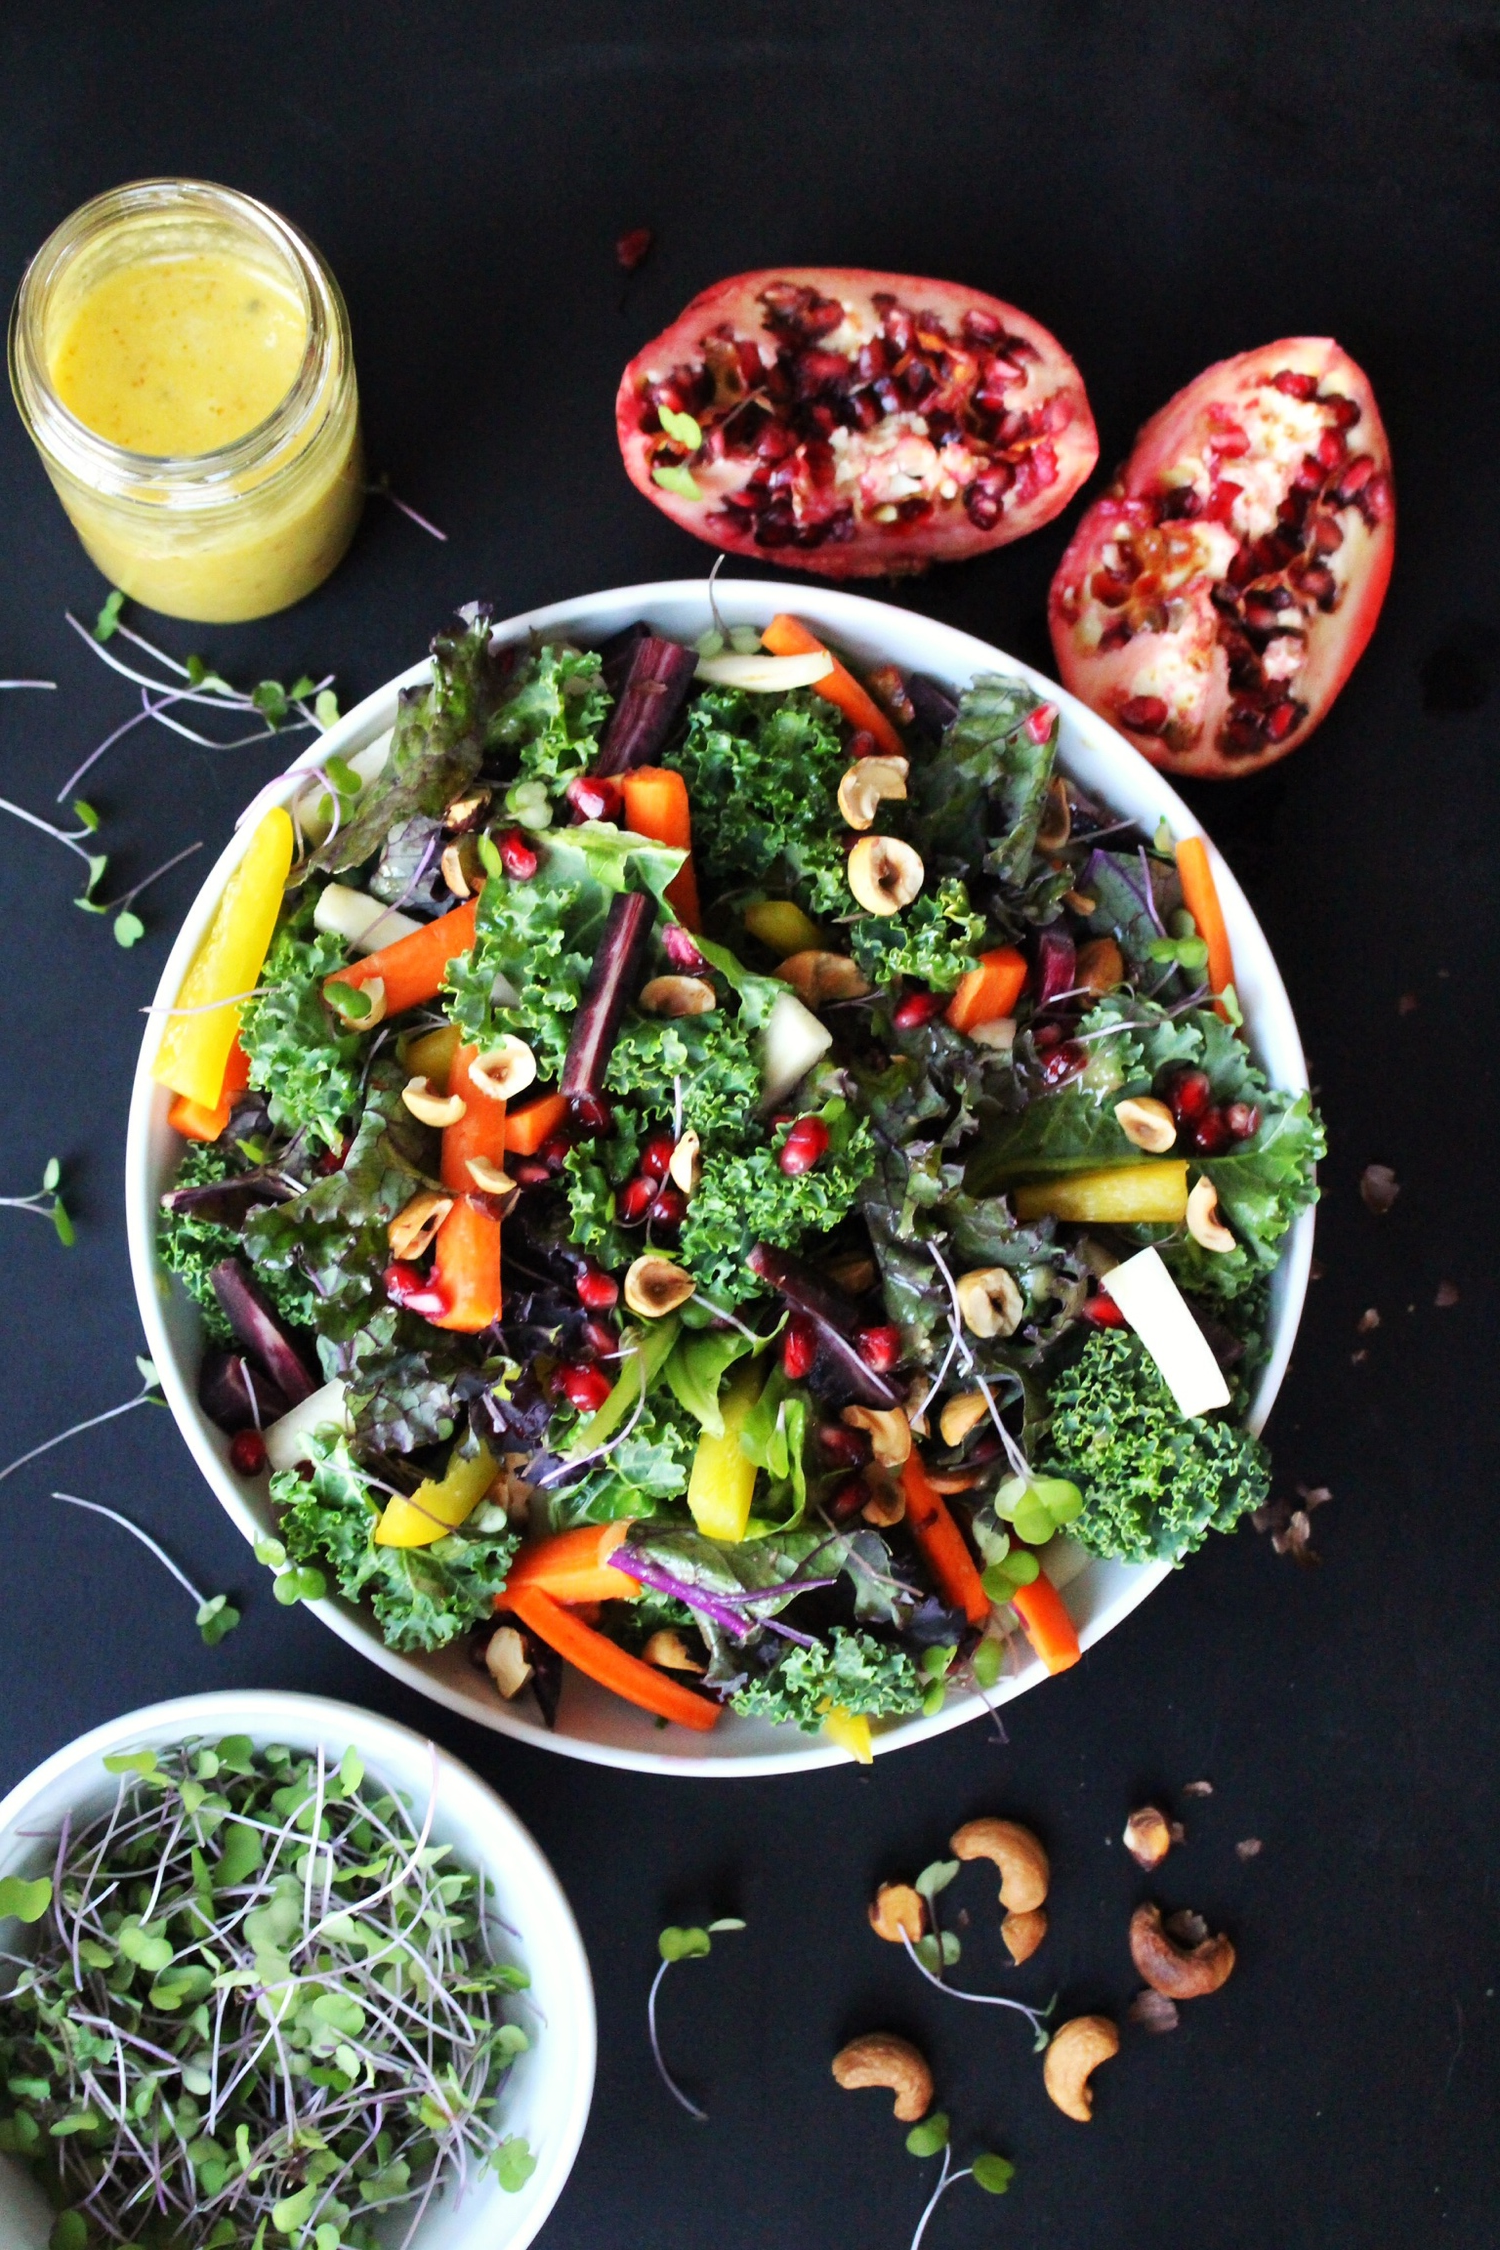 Colorful Kale Salad with Pomegranate Seeds and Roasted Nuts